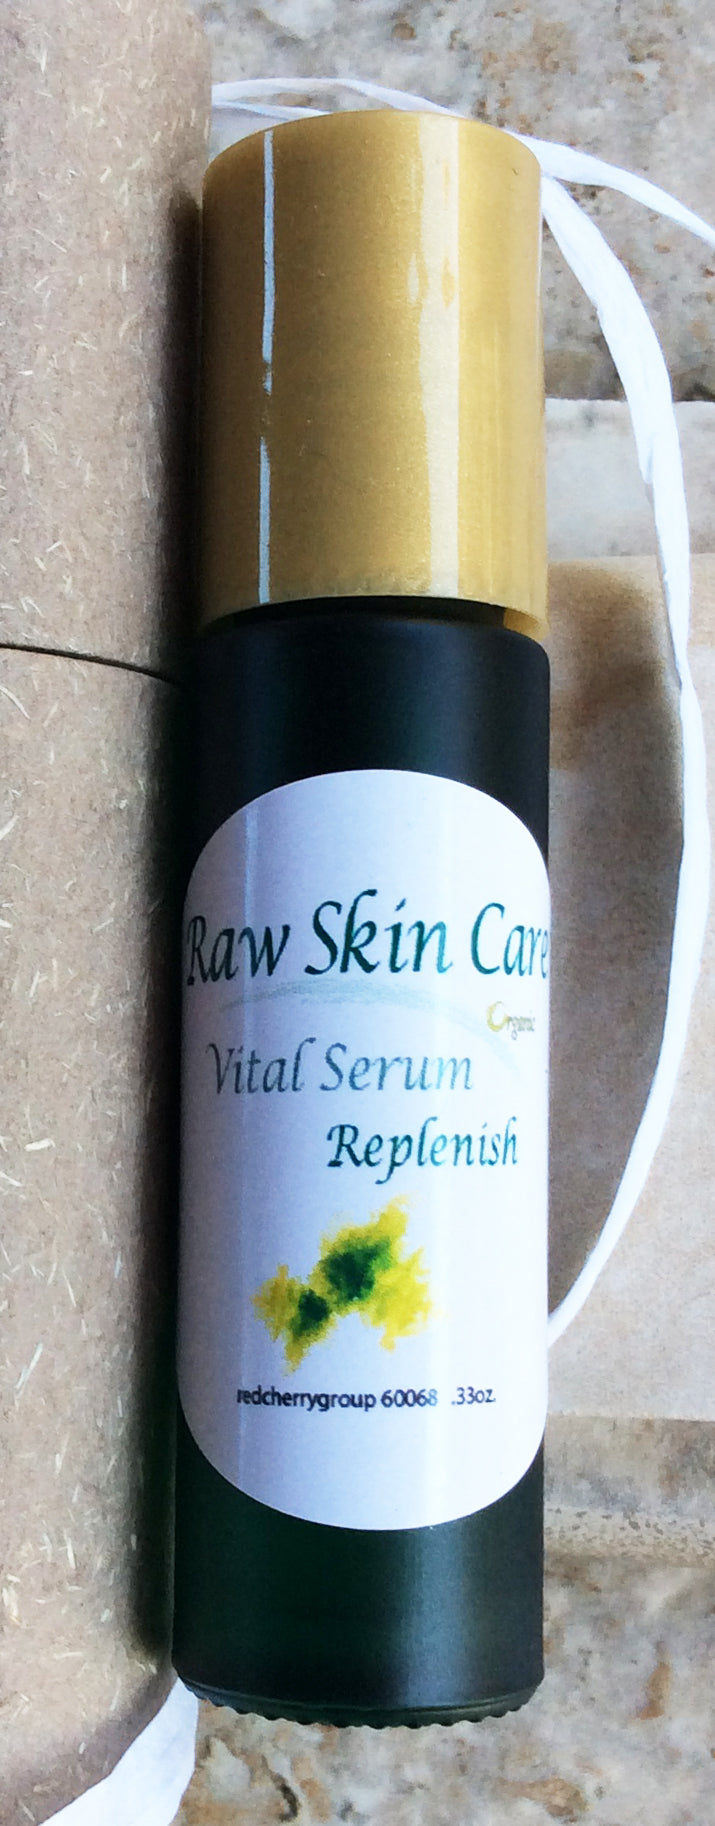 Replenish Vital Nutrient Serum .33oz.